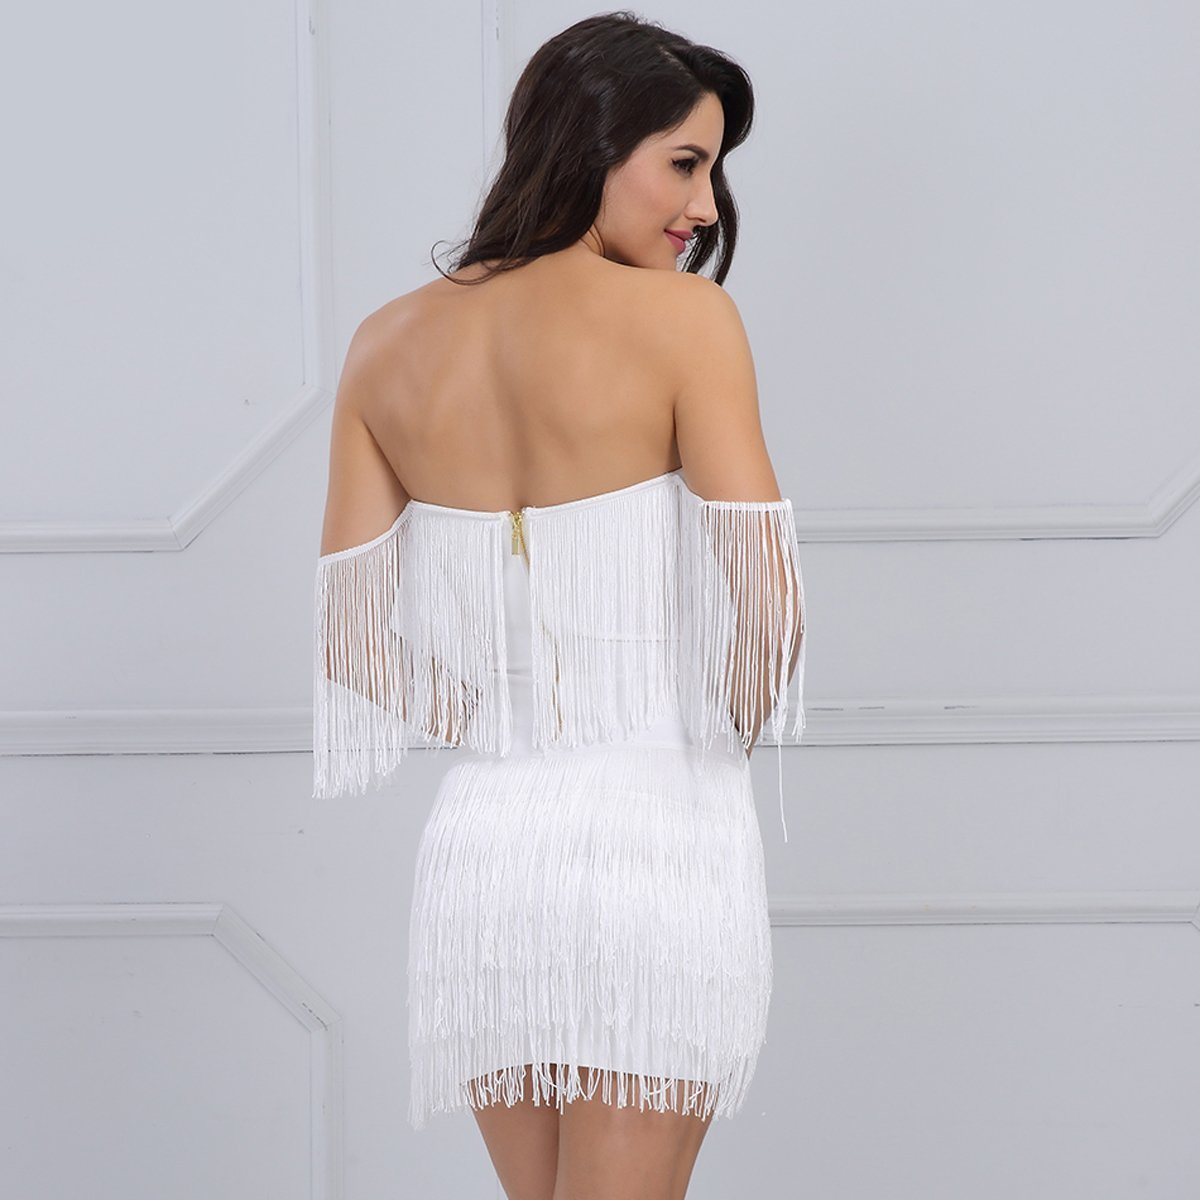 Fern Dress | White, Bandage Dress - Viva Devine